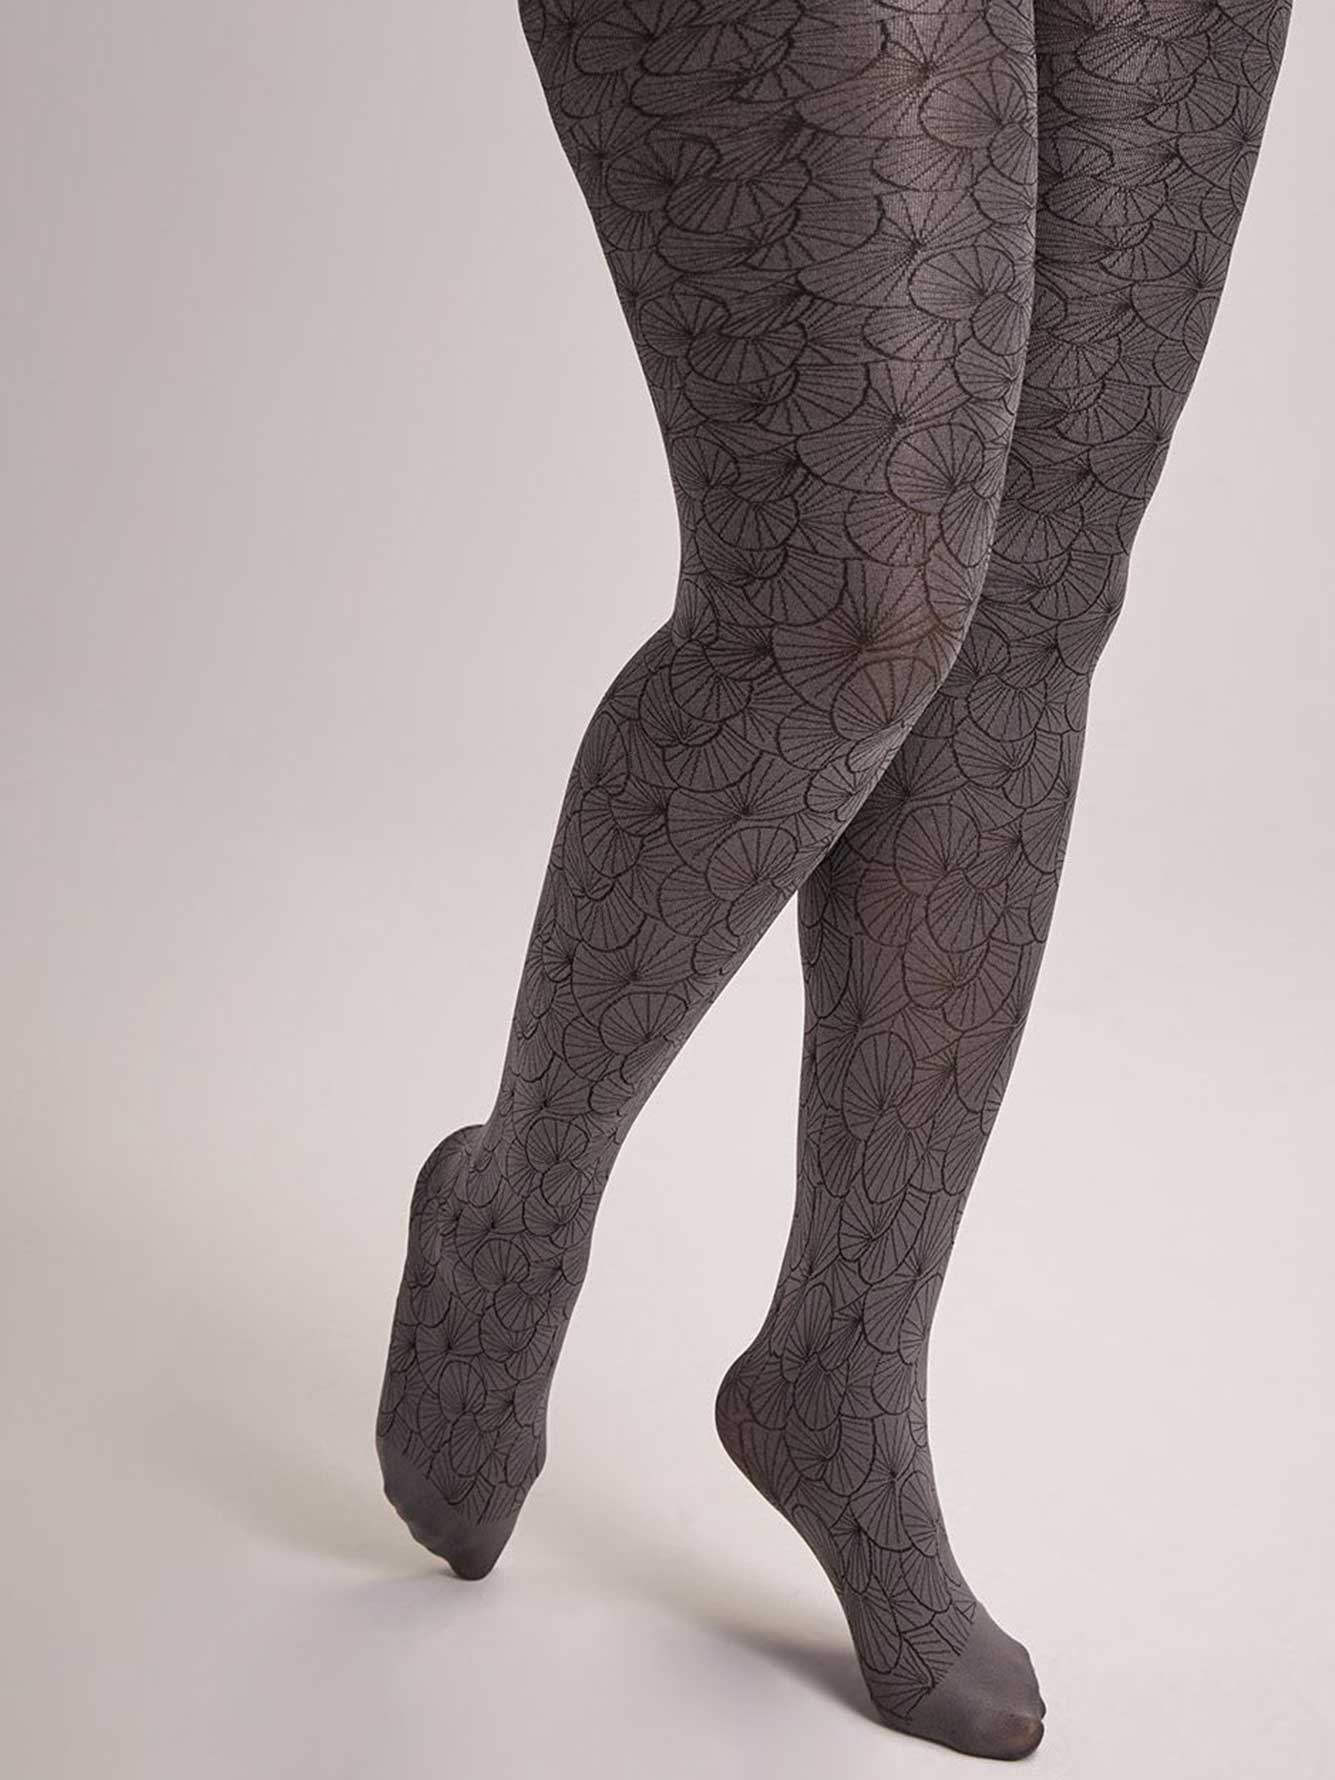 Lily Pad Tights